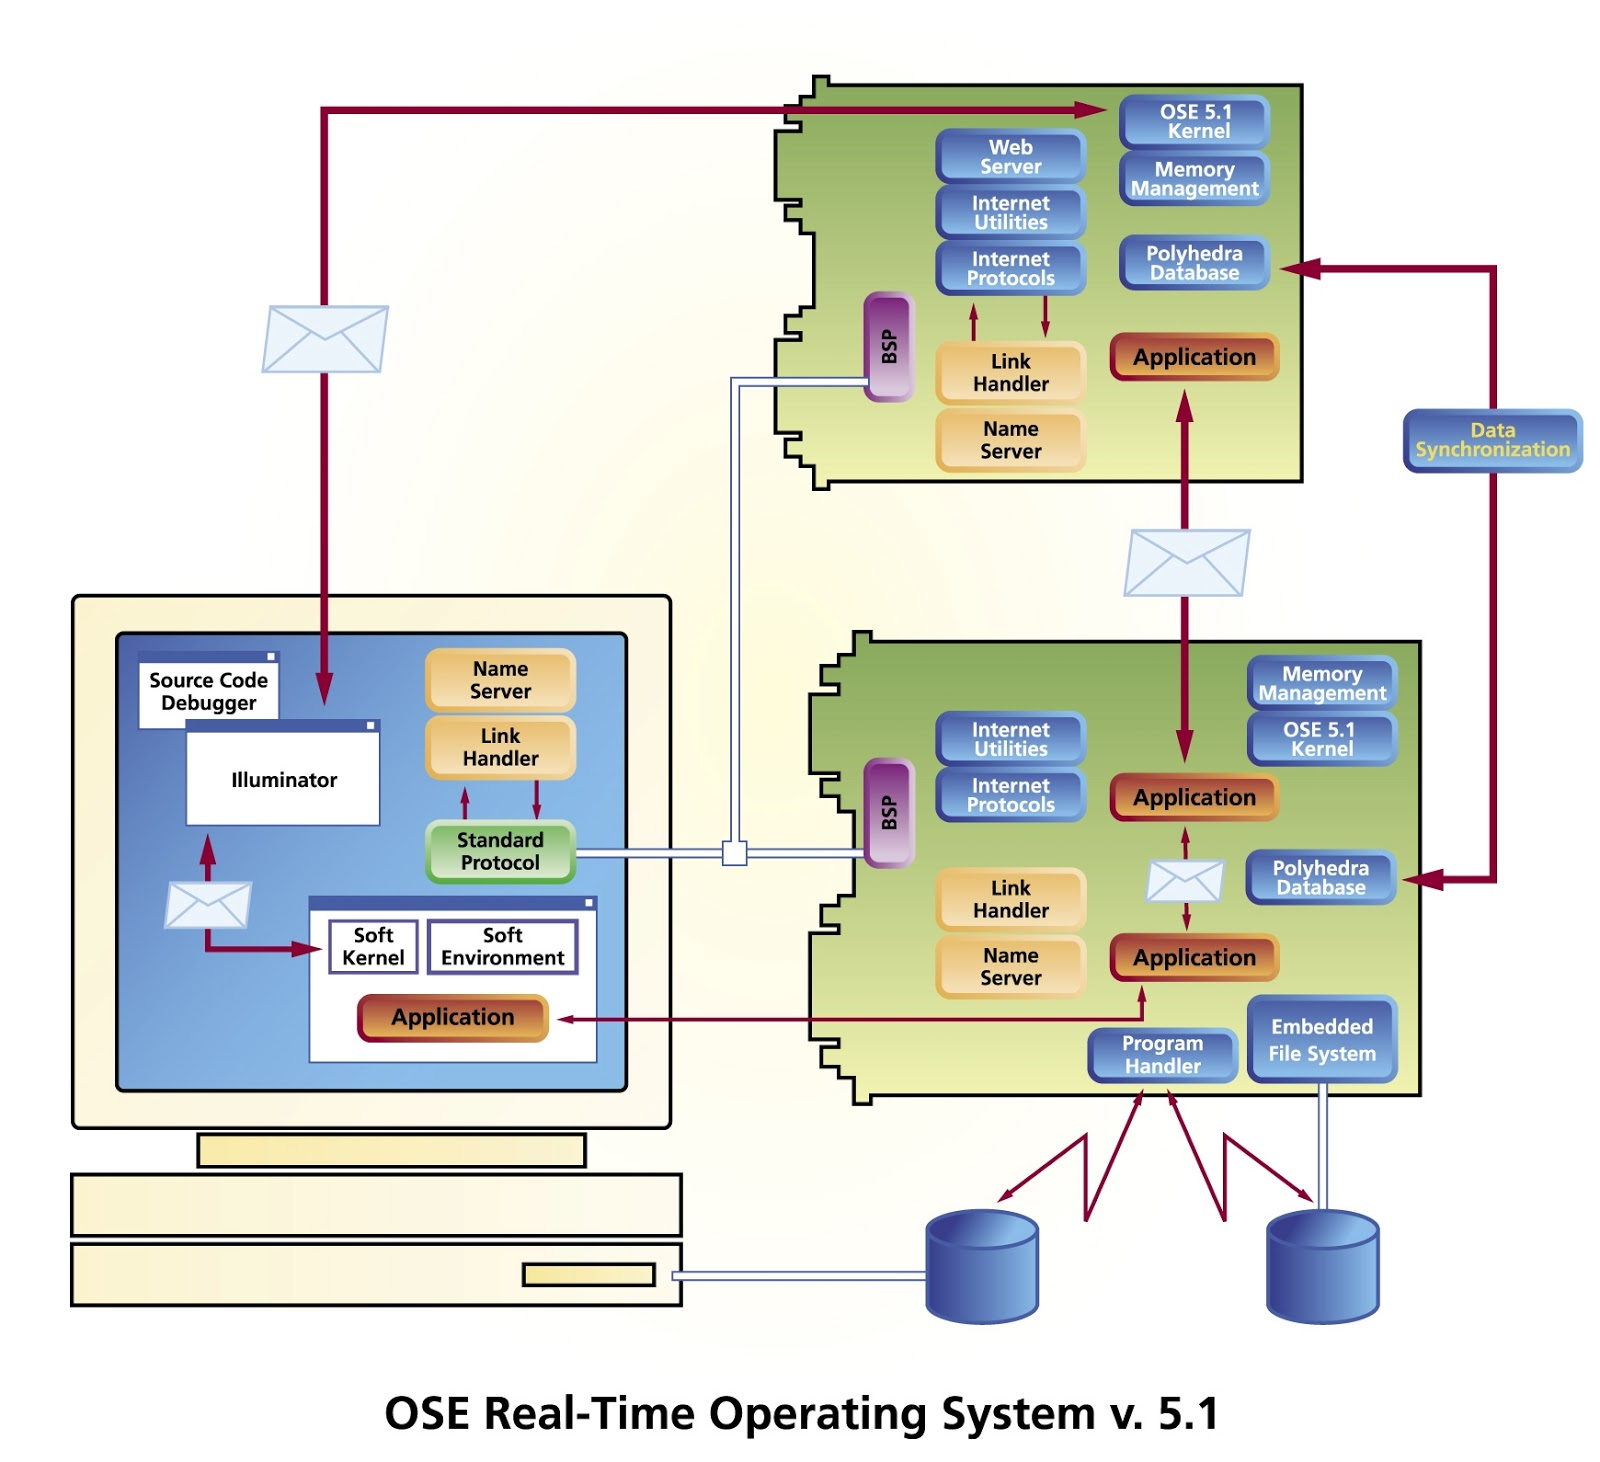 essential properties of operating systems An operating system does the following activities related to real-time system activity in such systems, operating systems typically read from and react to sensor data the operating system.